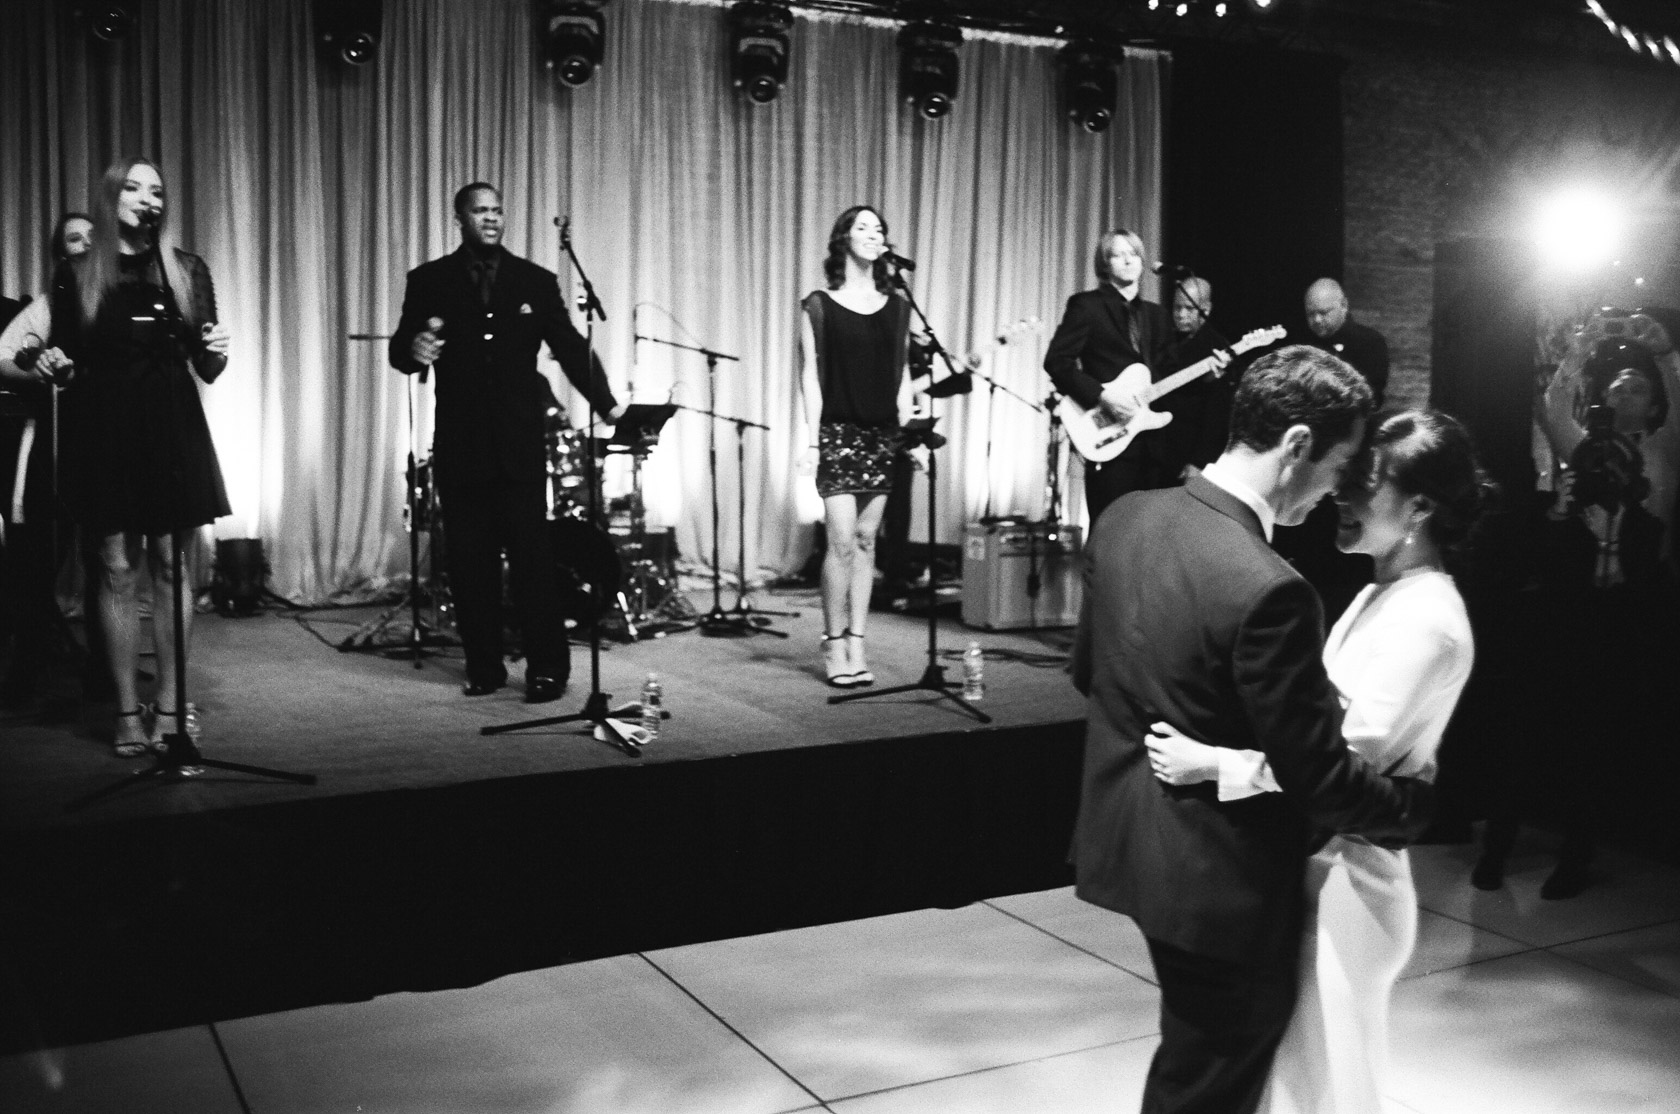 new orleans wedding reception on film at cac - 02